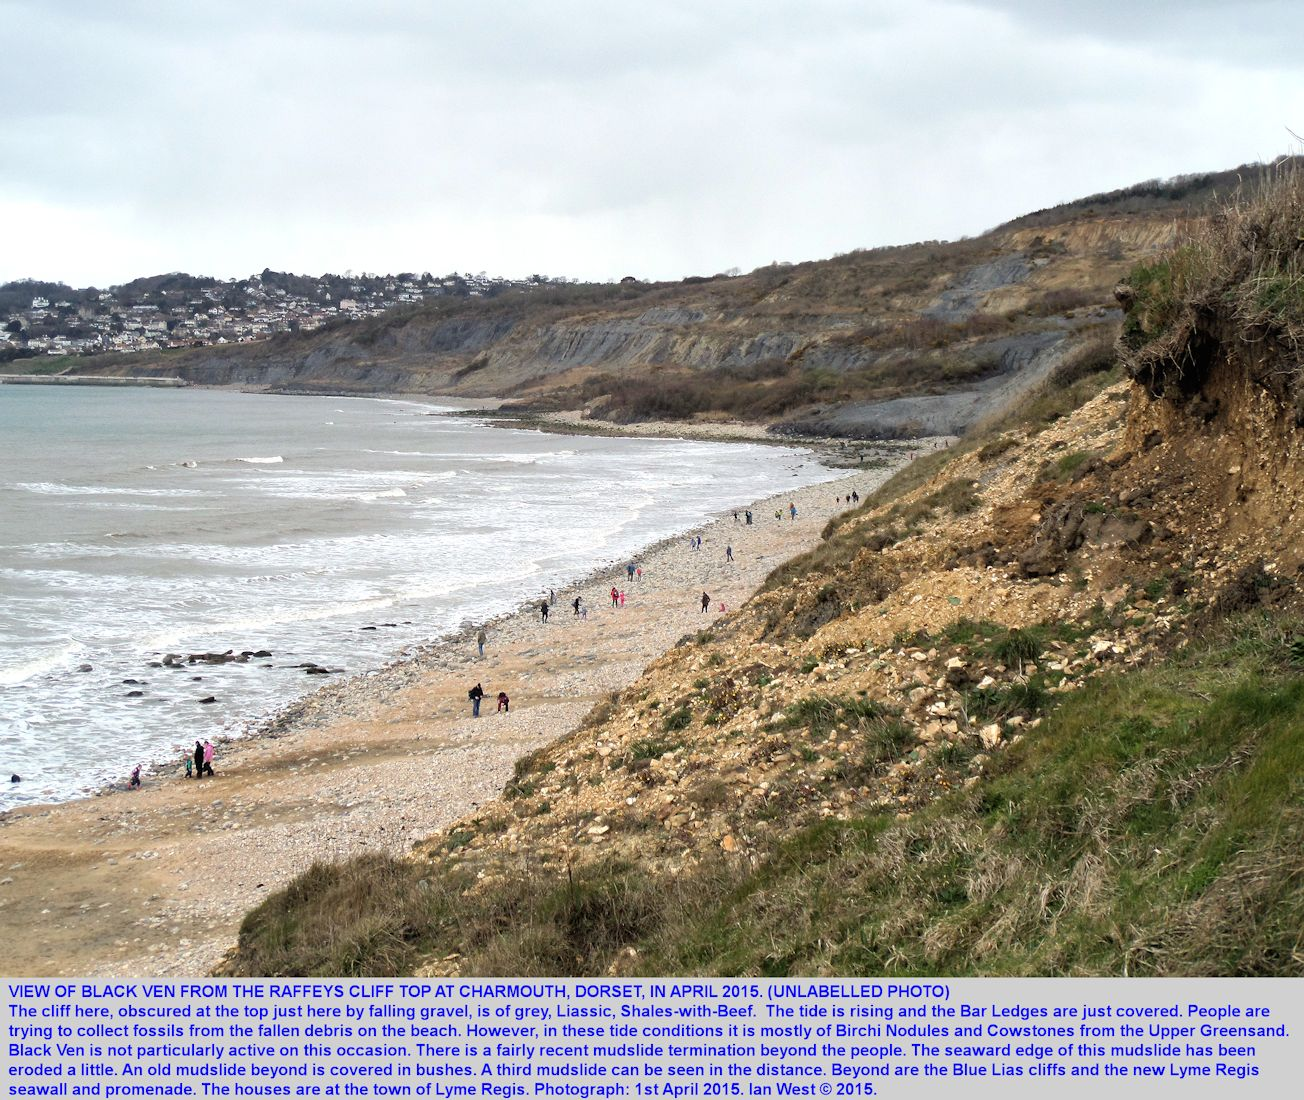 A view westward of the Black Ven landslide complex from cliff at Raffeys, Charmouth, Dorset, 1st April 2015